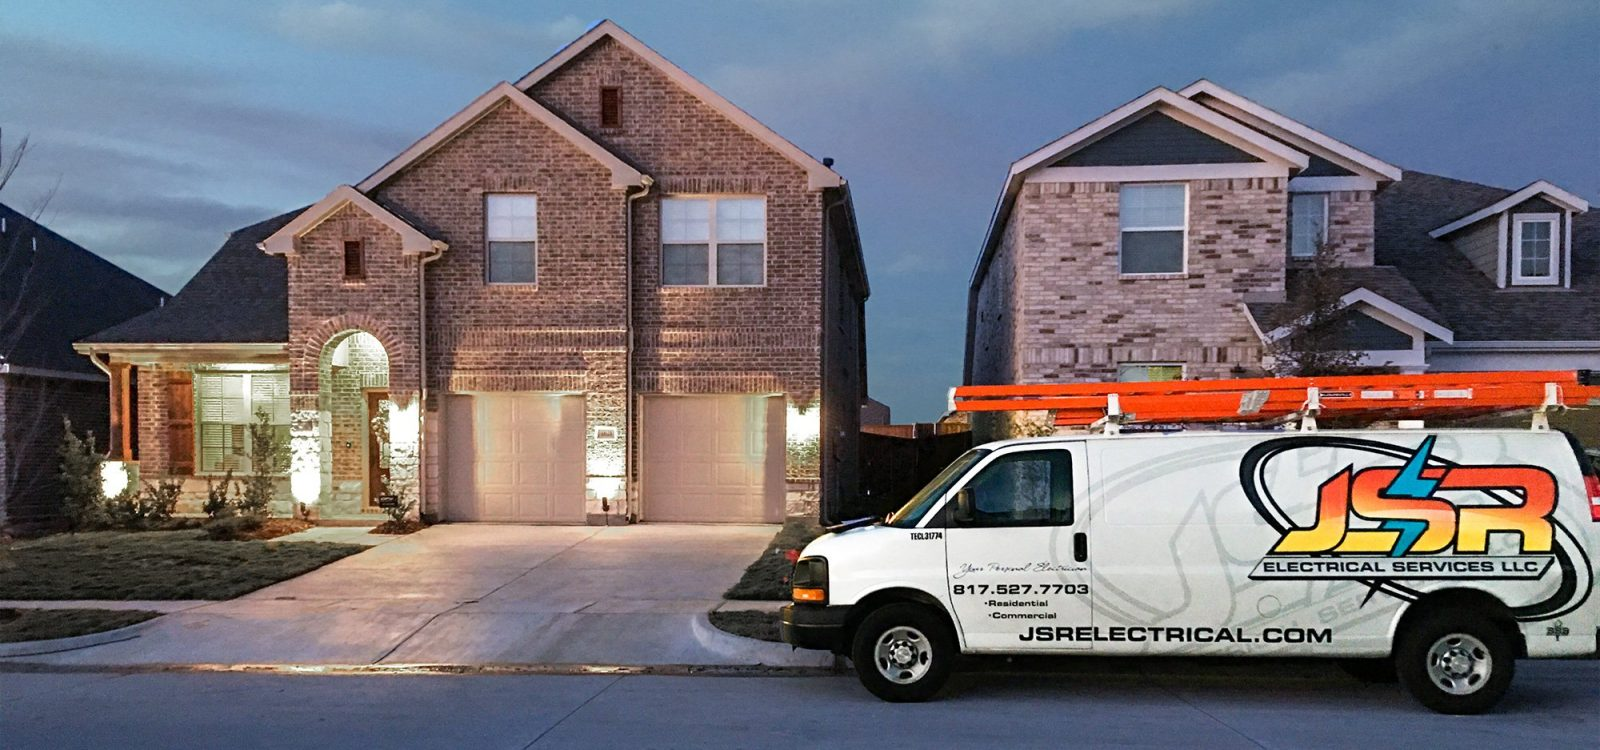 Outdoor lighting installation and landscape lights with a JSR electrical service van sitting in front of a home.